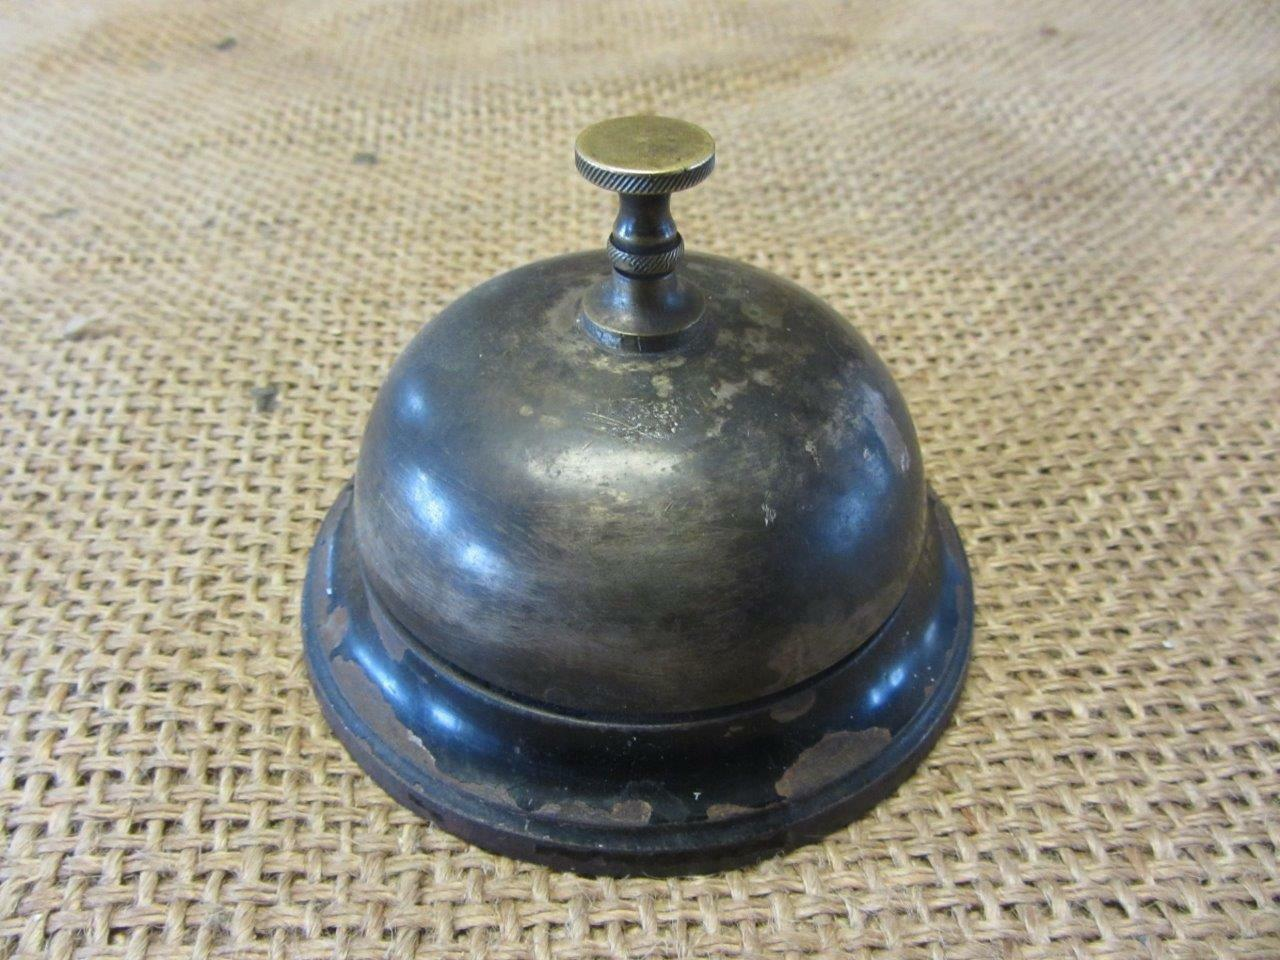 Vintage 1887 Spinner Cast Iron Brass Desk Bell Antique Hotel Bells 9518